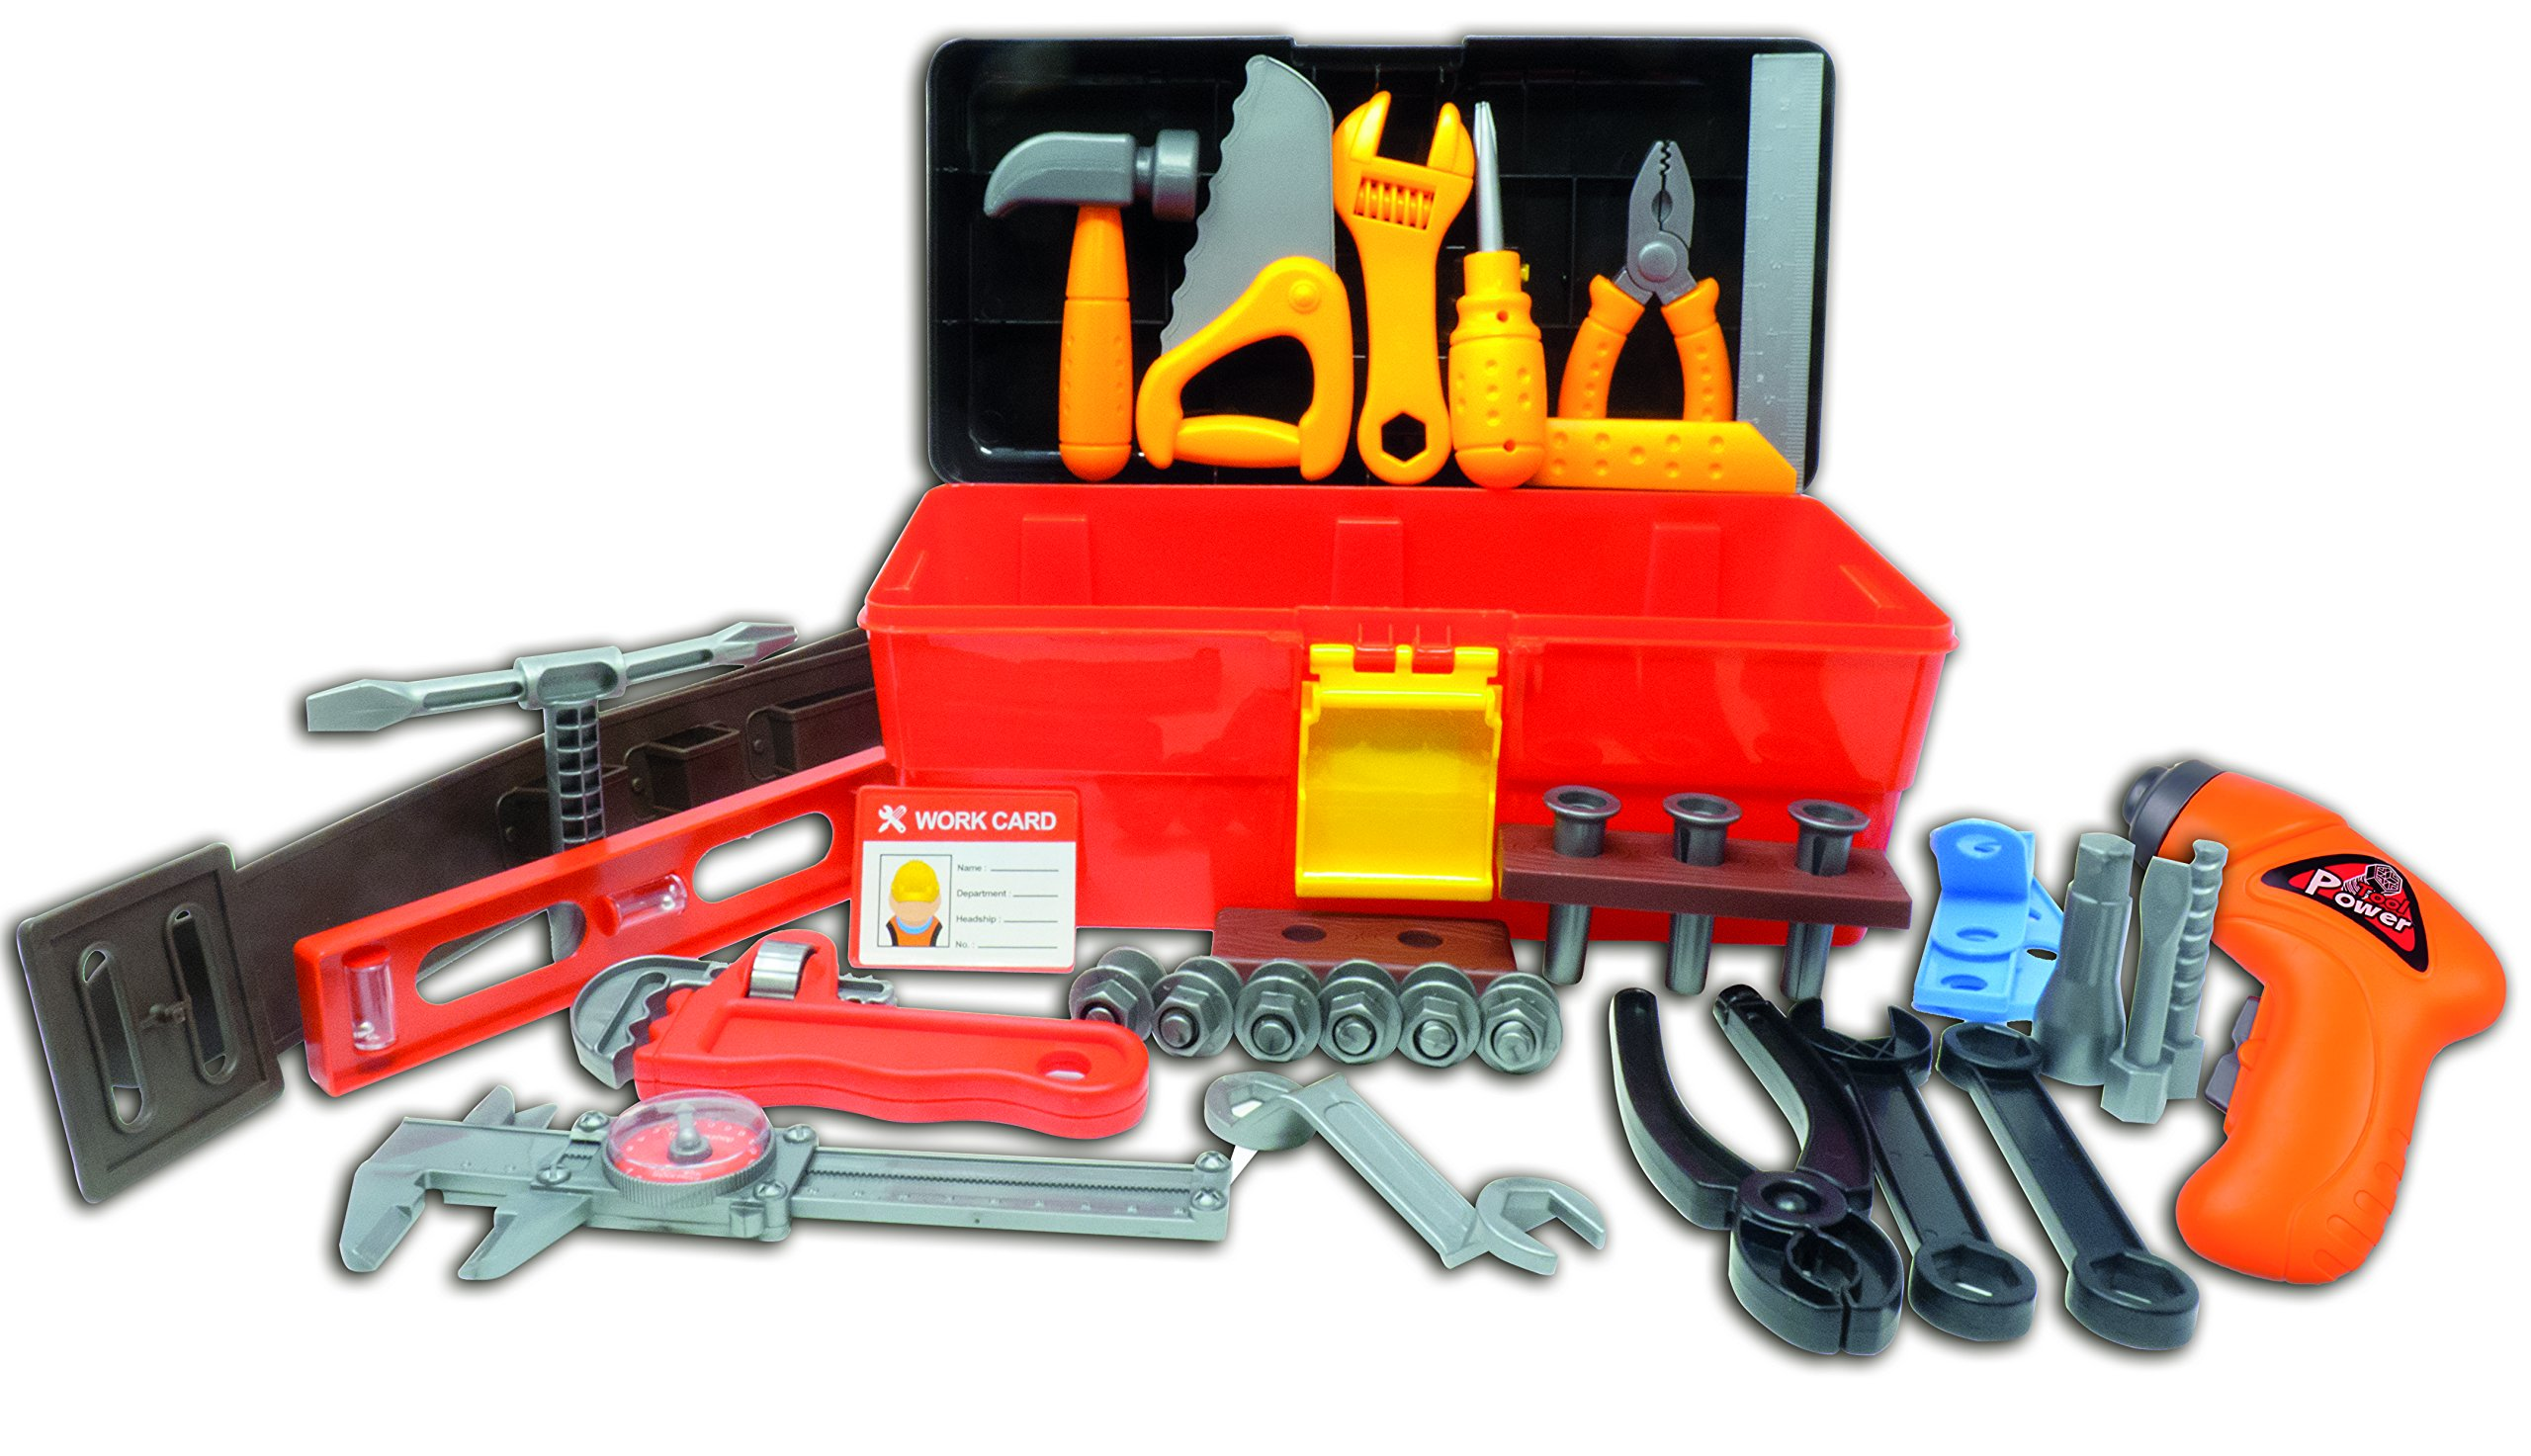 Deluxe Toy Tool Set for Toddlers TG668 - Fun Tool Box Kit for Boys with 40 Pieces Including Battery Powered Drill - Tool Set for Toddlers & Boys by ThinkGizmos (Trademark Protected) by Think Gizmos